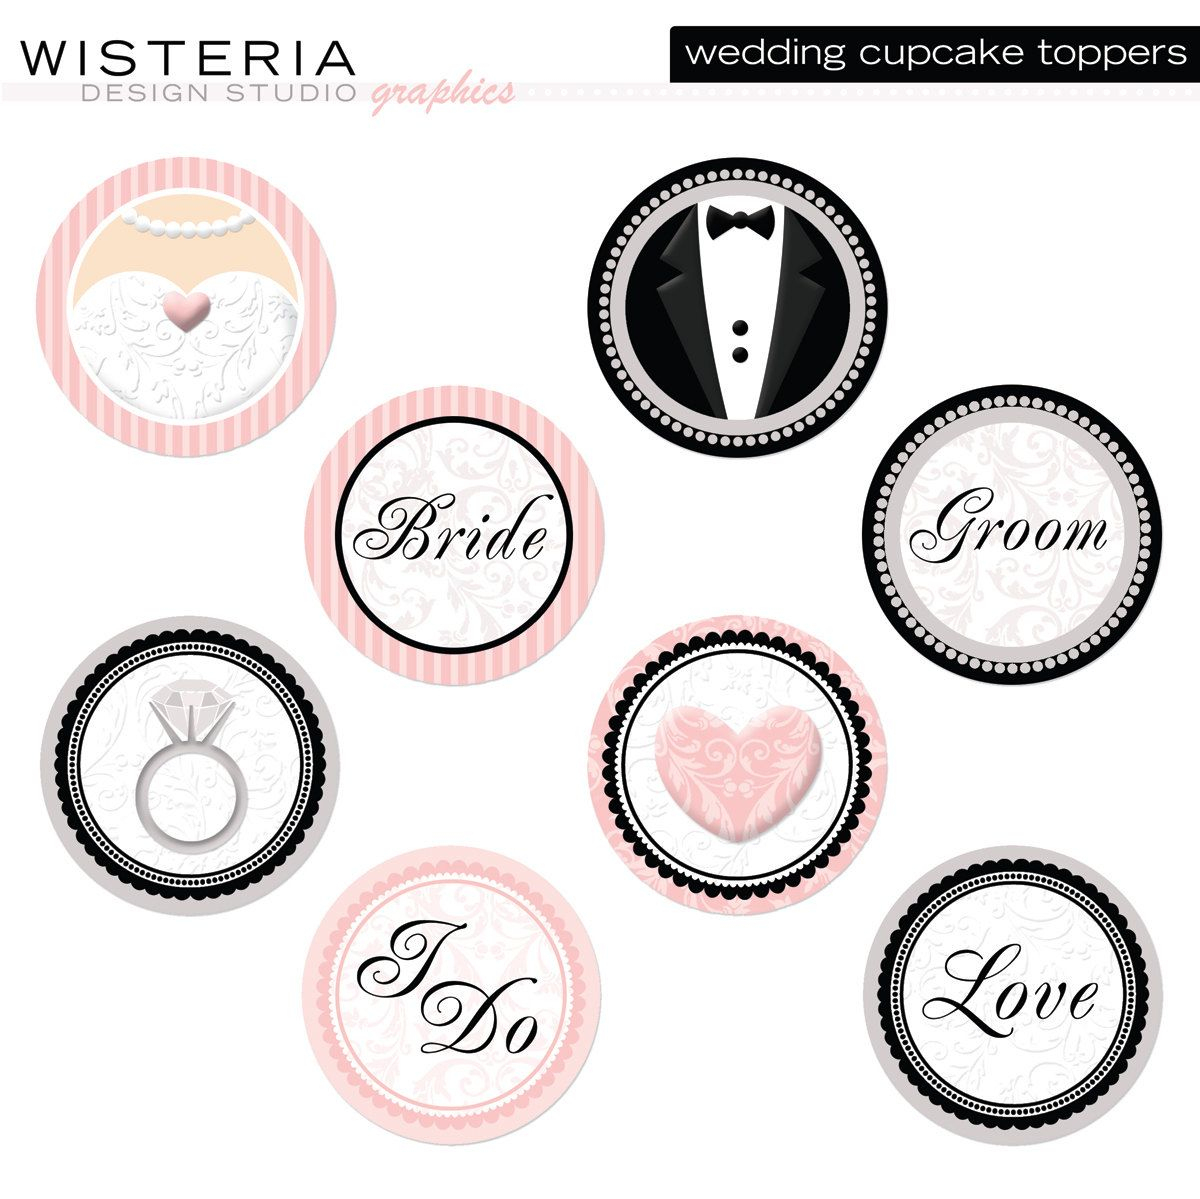 Wedding Cupcake Toppers - Diy Printables - Instant Download - Free Printable Cupcake Toppers Bridal Shower